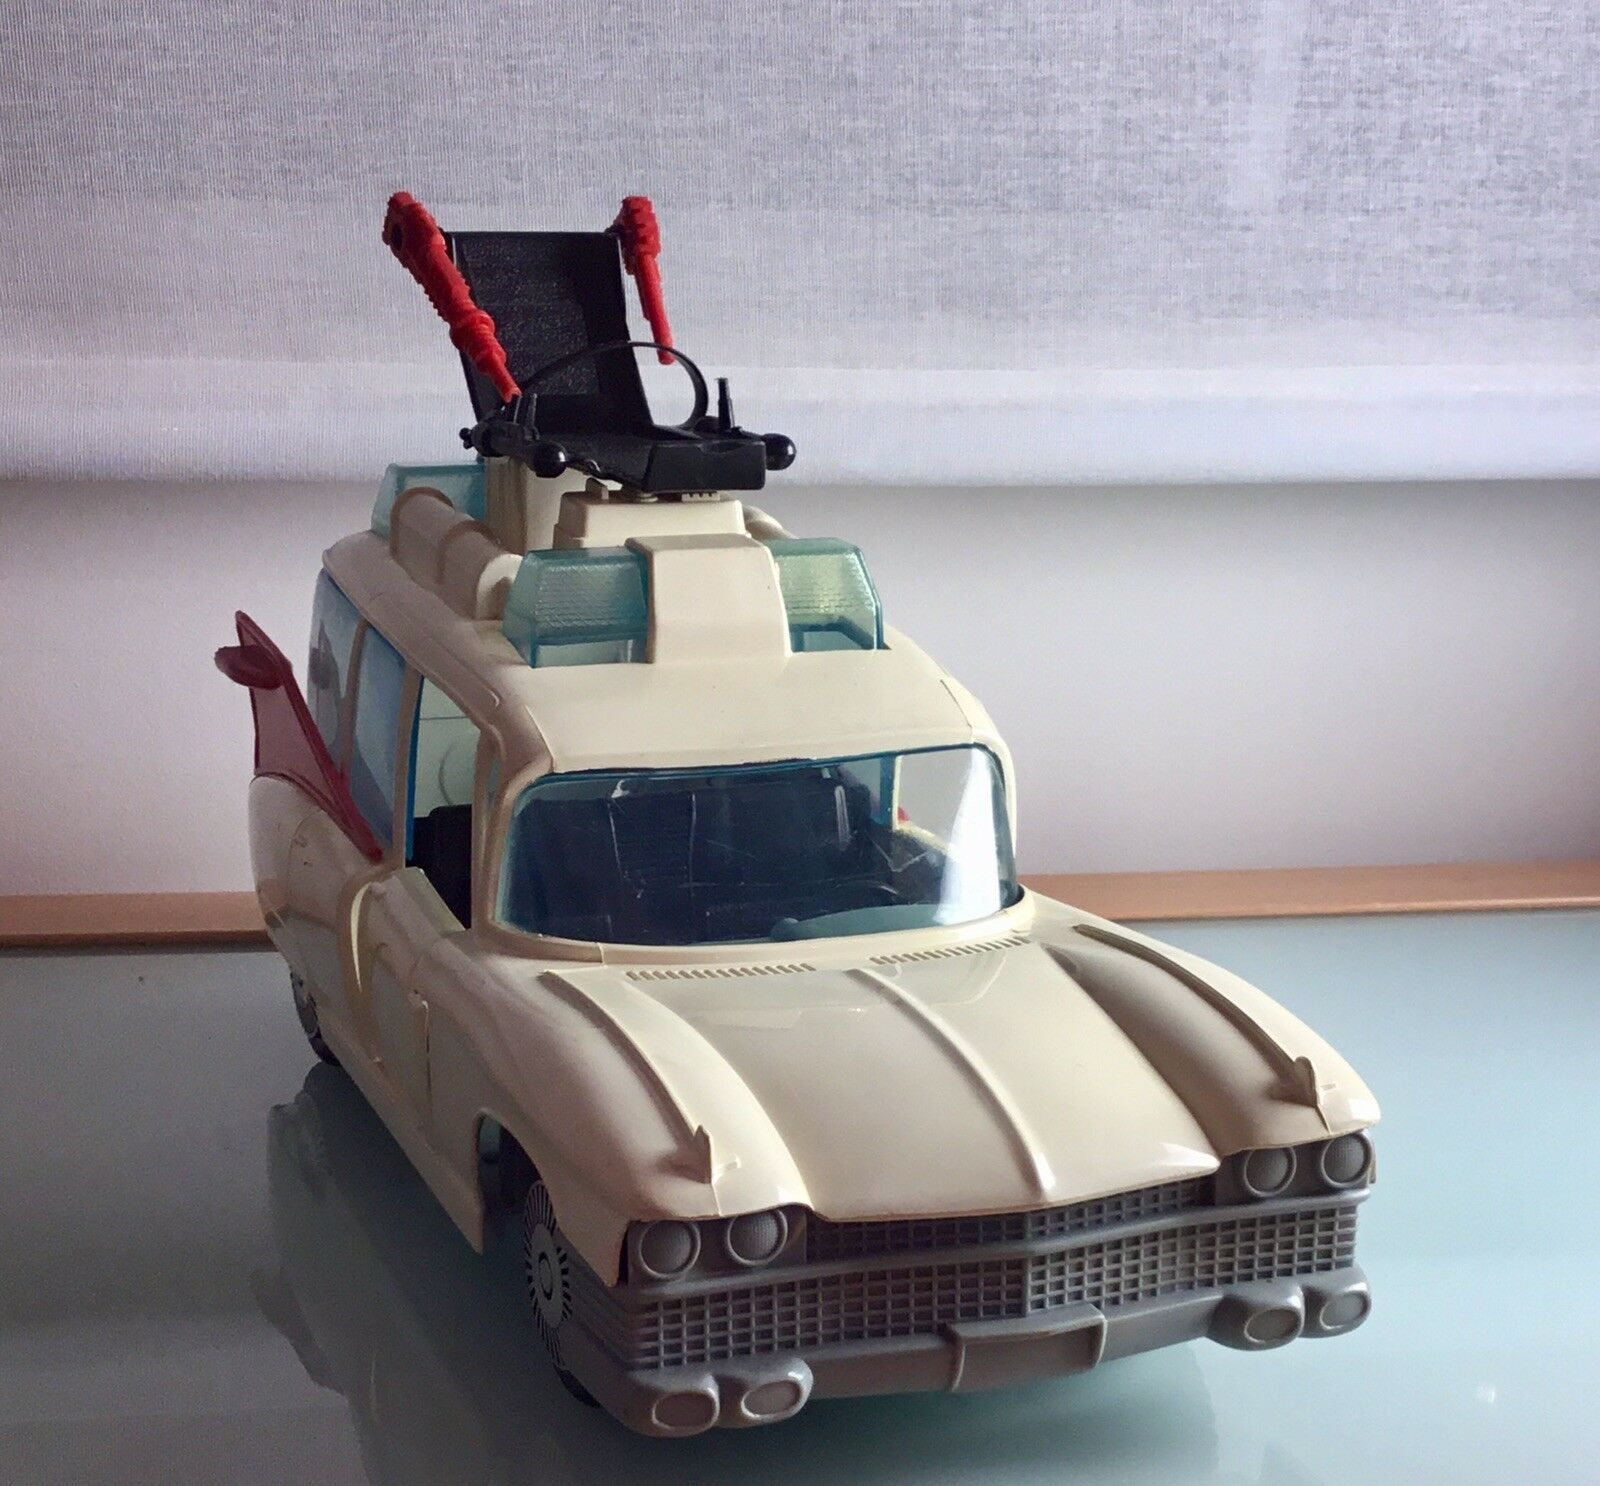 1980s Vintage Real Ghostbusters Kenner Action Figure Ecto1 Car Toy